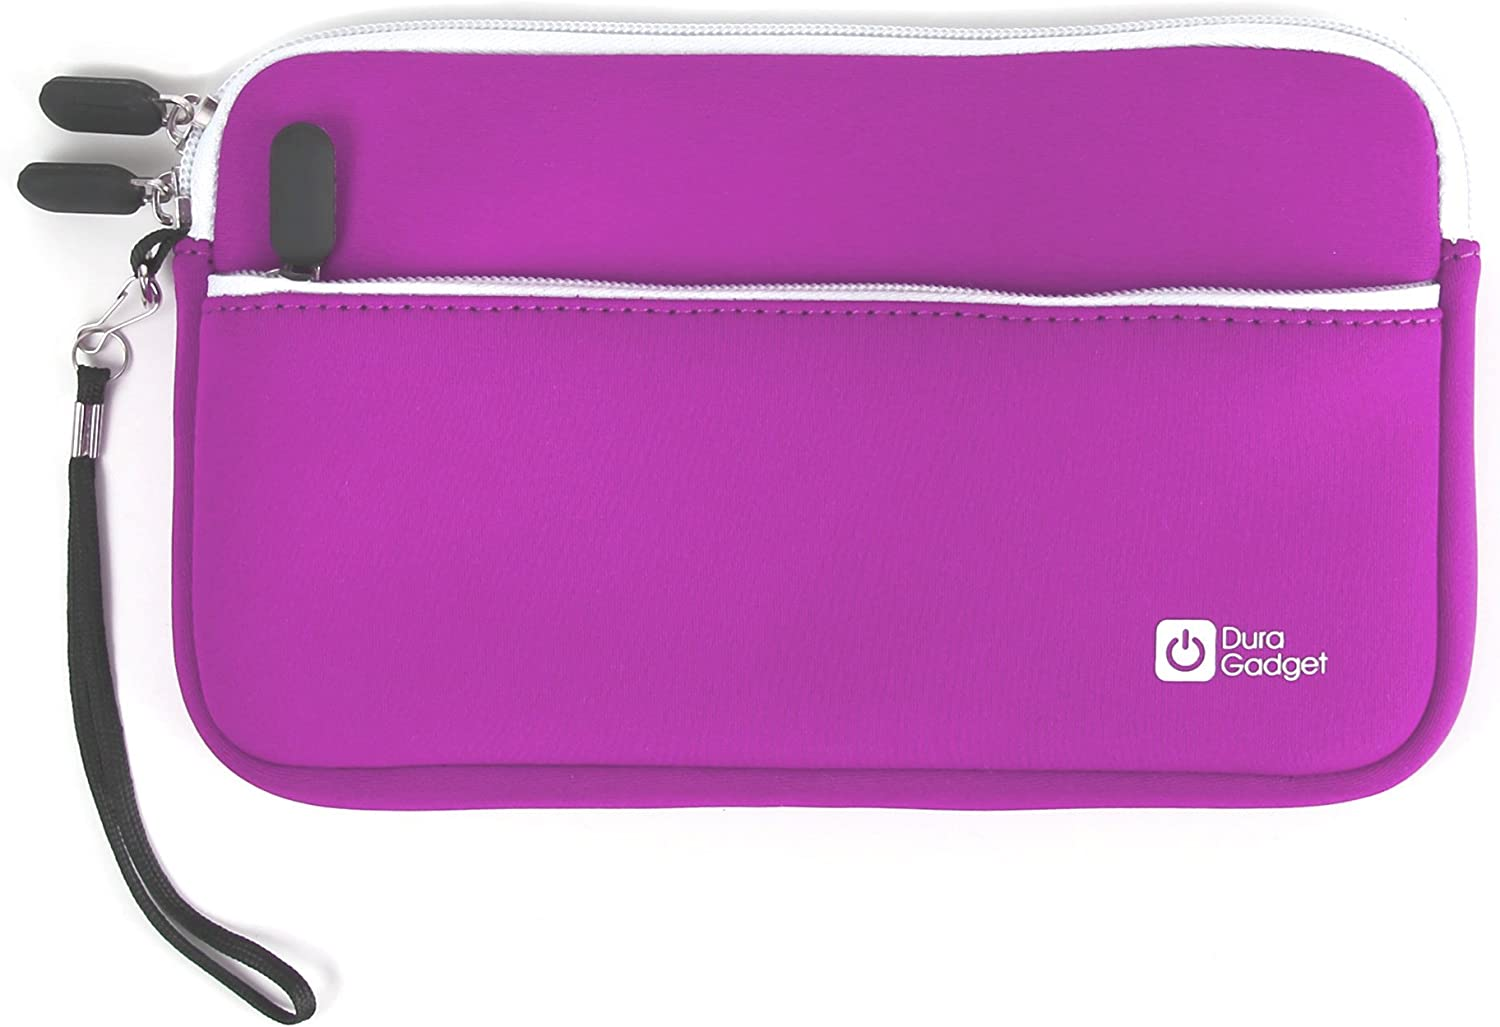 DURAGADGET Premium Quality Water Resistant Travel Pouch-Style Case in Purple Neoprene - Compatible with Dell Venue 8 16GB Android 4.2 Tablet (Black)